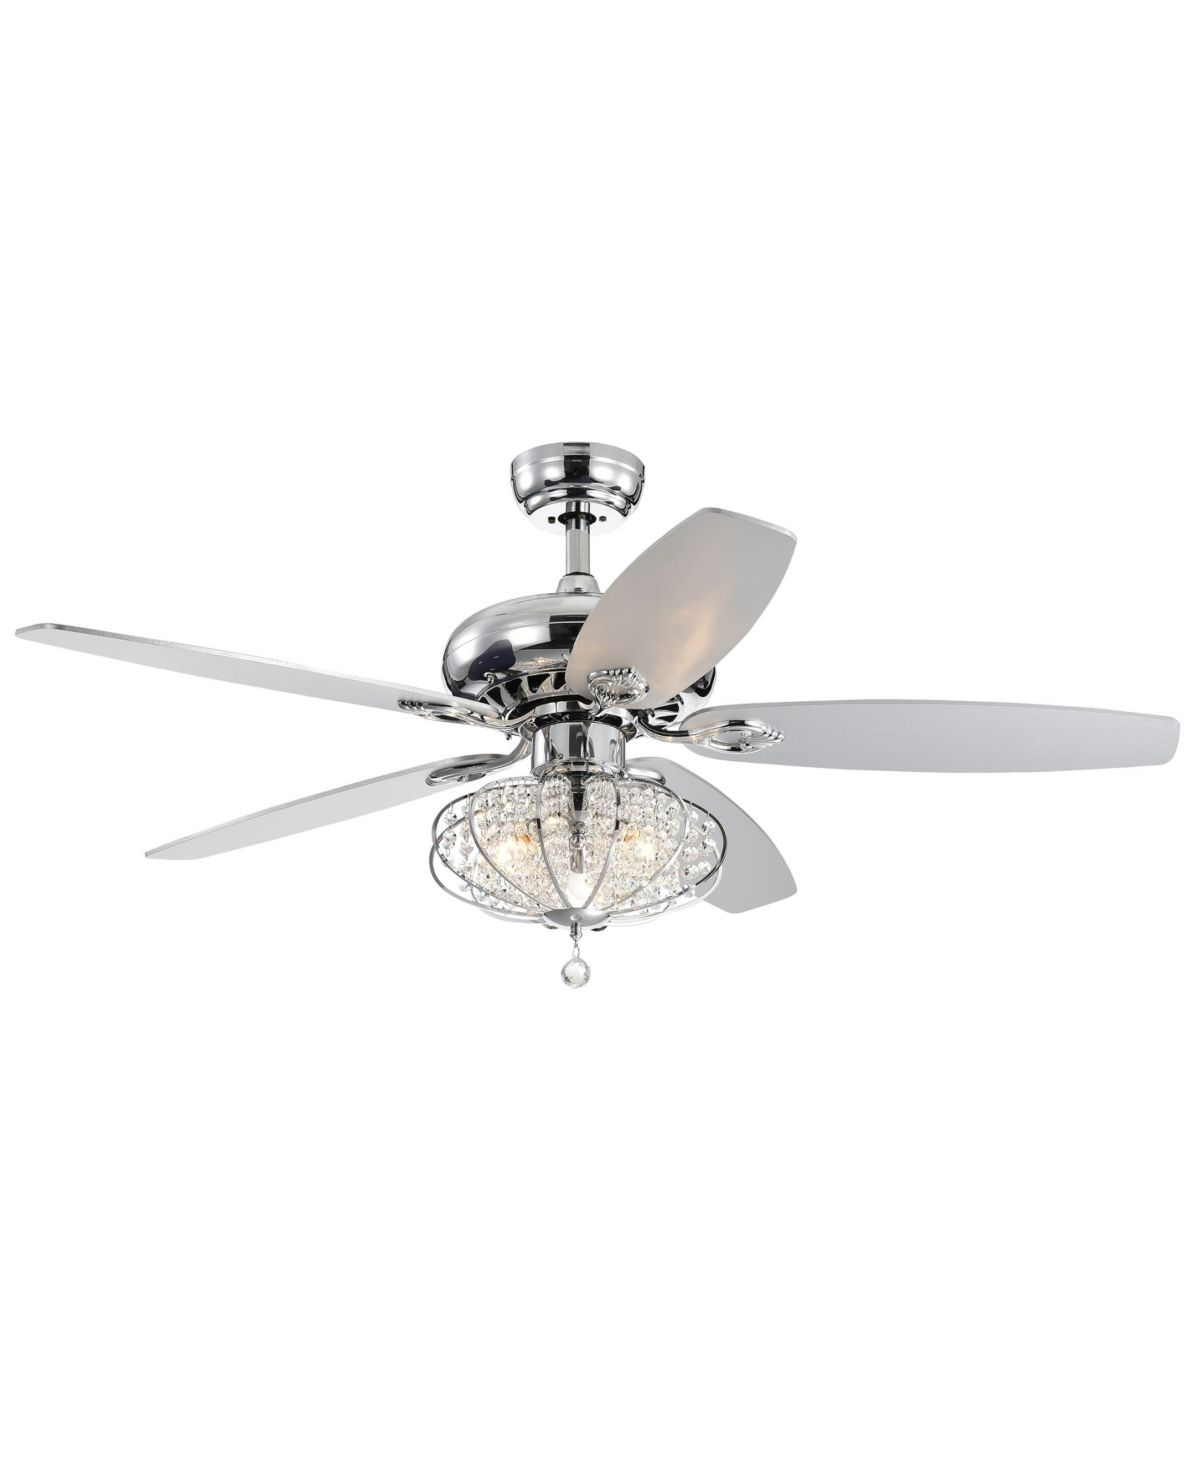 Swag Ceiling Fan Best Way To Keep Your Home Cool And Save Money On Your Electricity Bills Warisan Lighting Ceiling Fan Electricity Bill Energy Saver